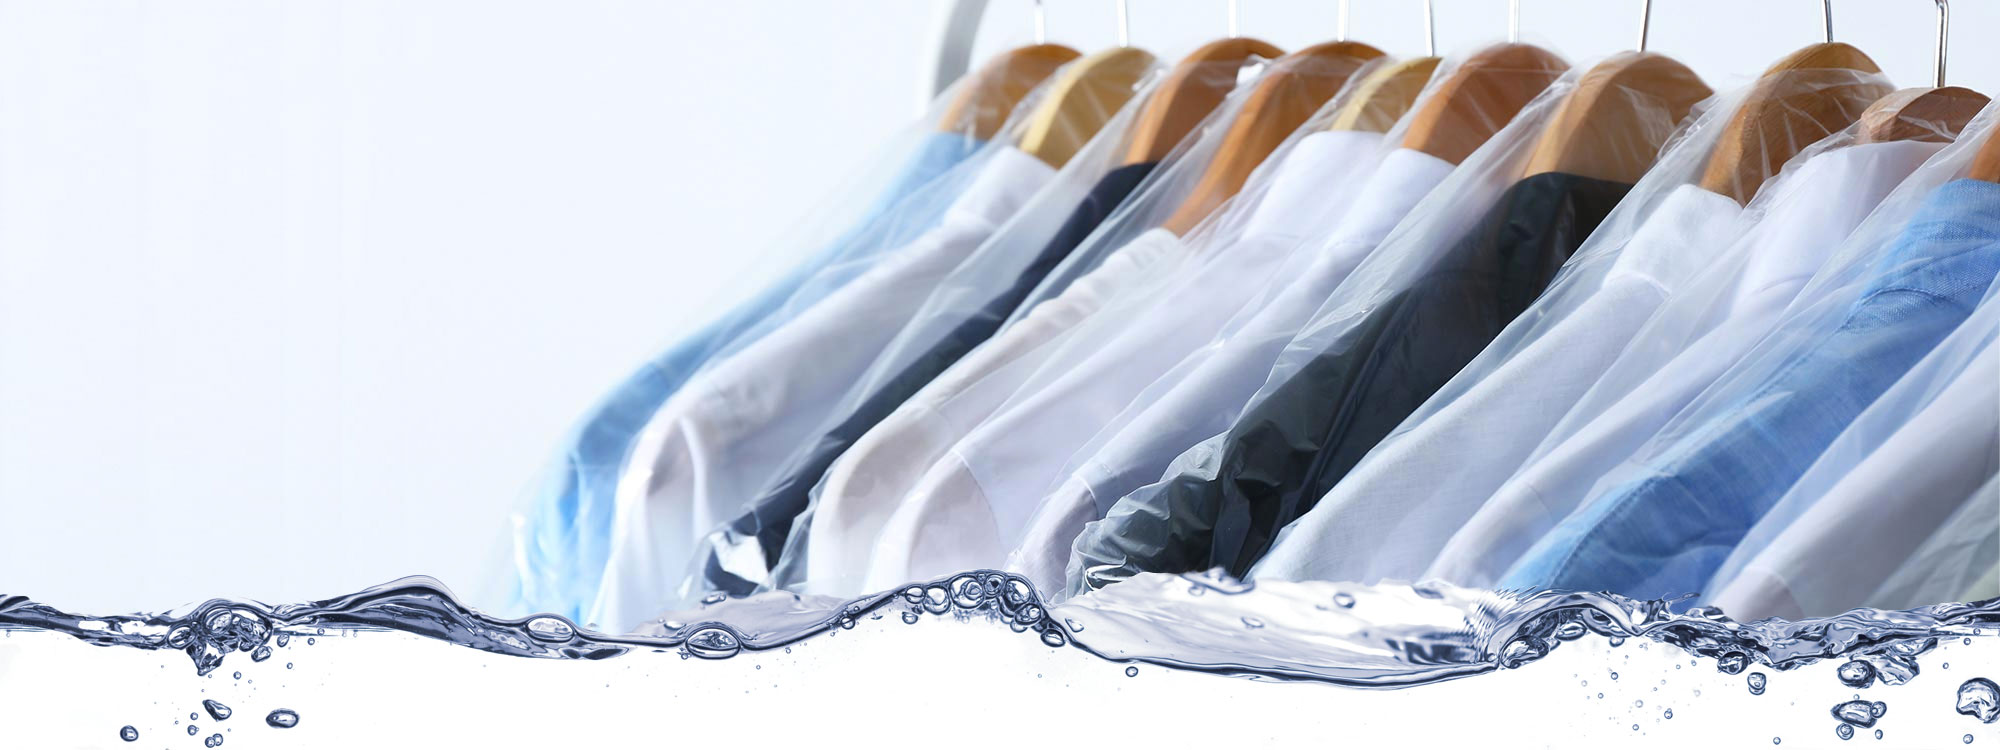 dry-cleaning-equipment-machines